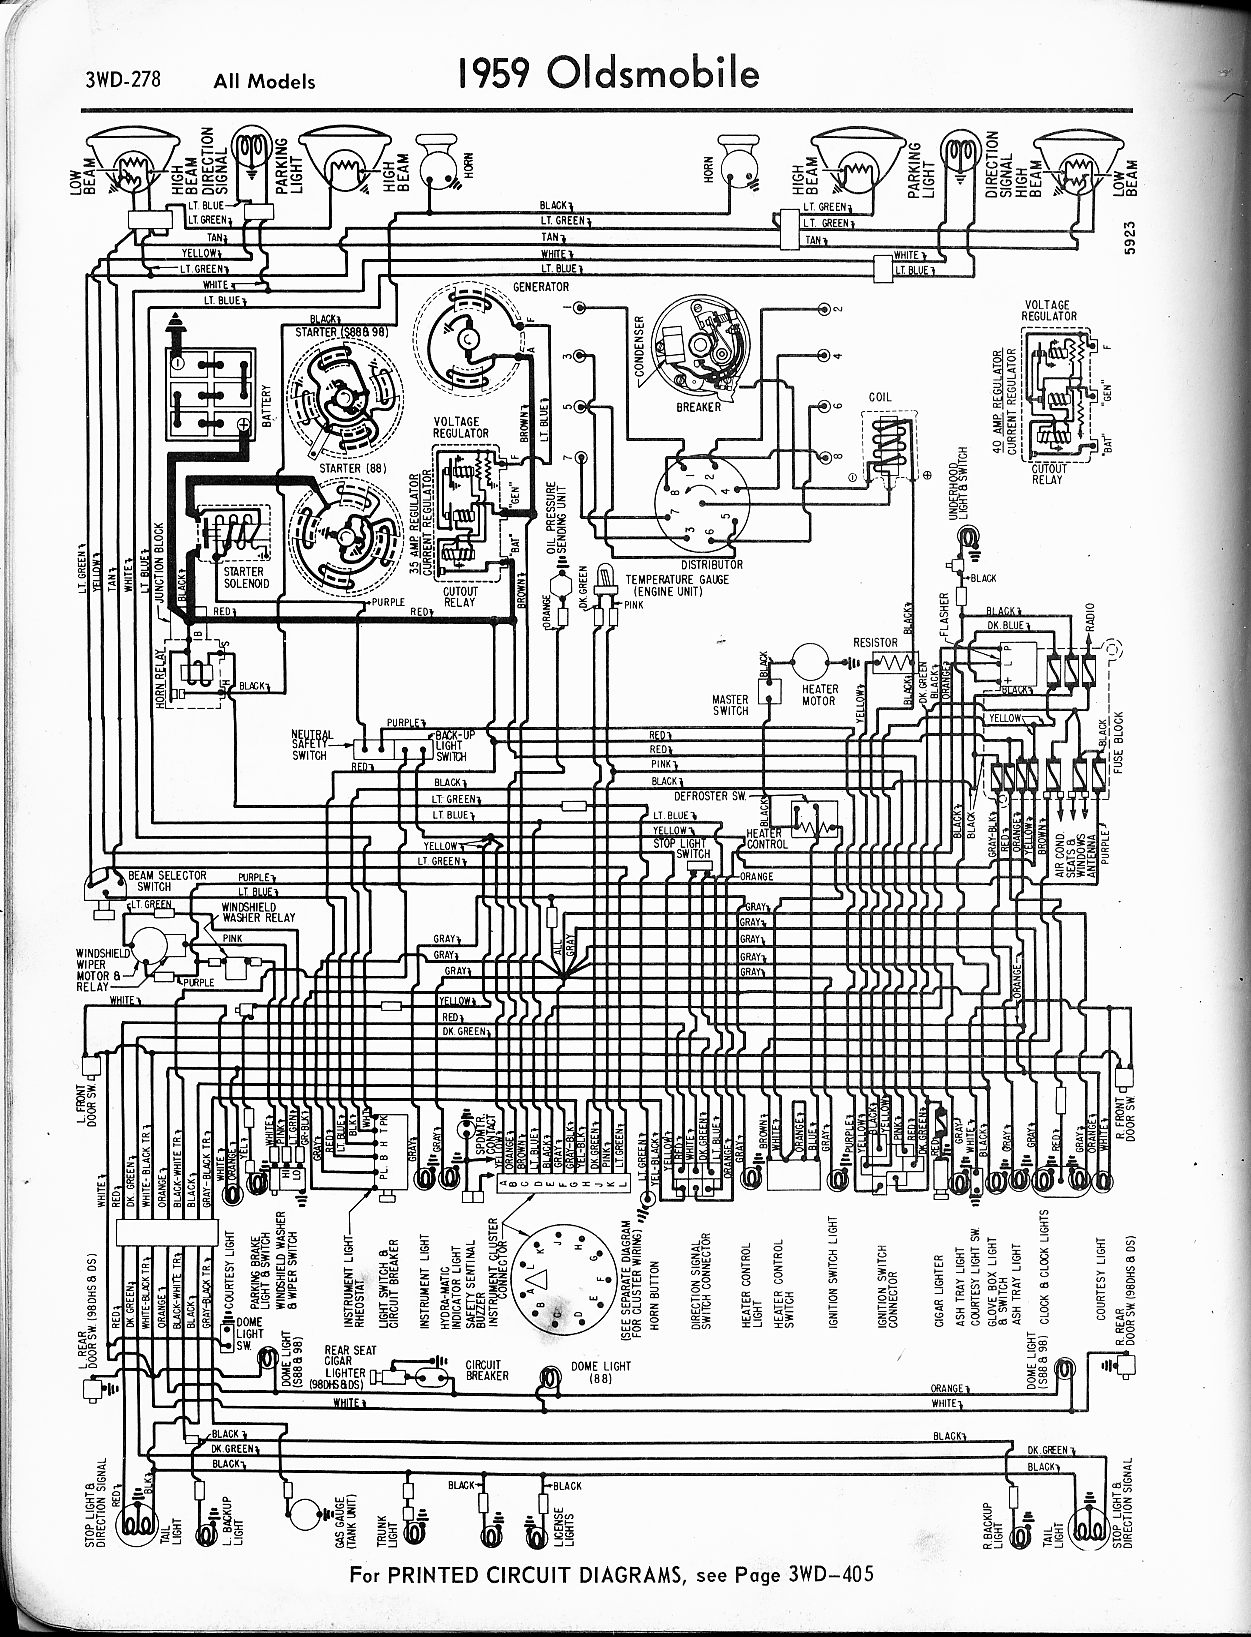 oldsmobile fuse block diagram wiring diagram ops Mitsubishi Wiring Diagrams